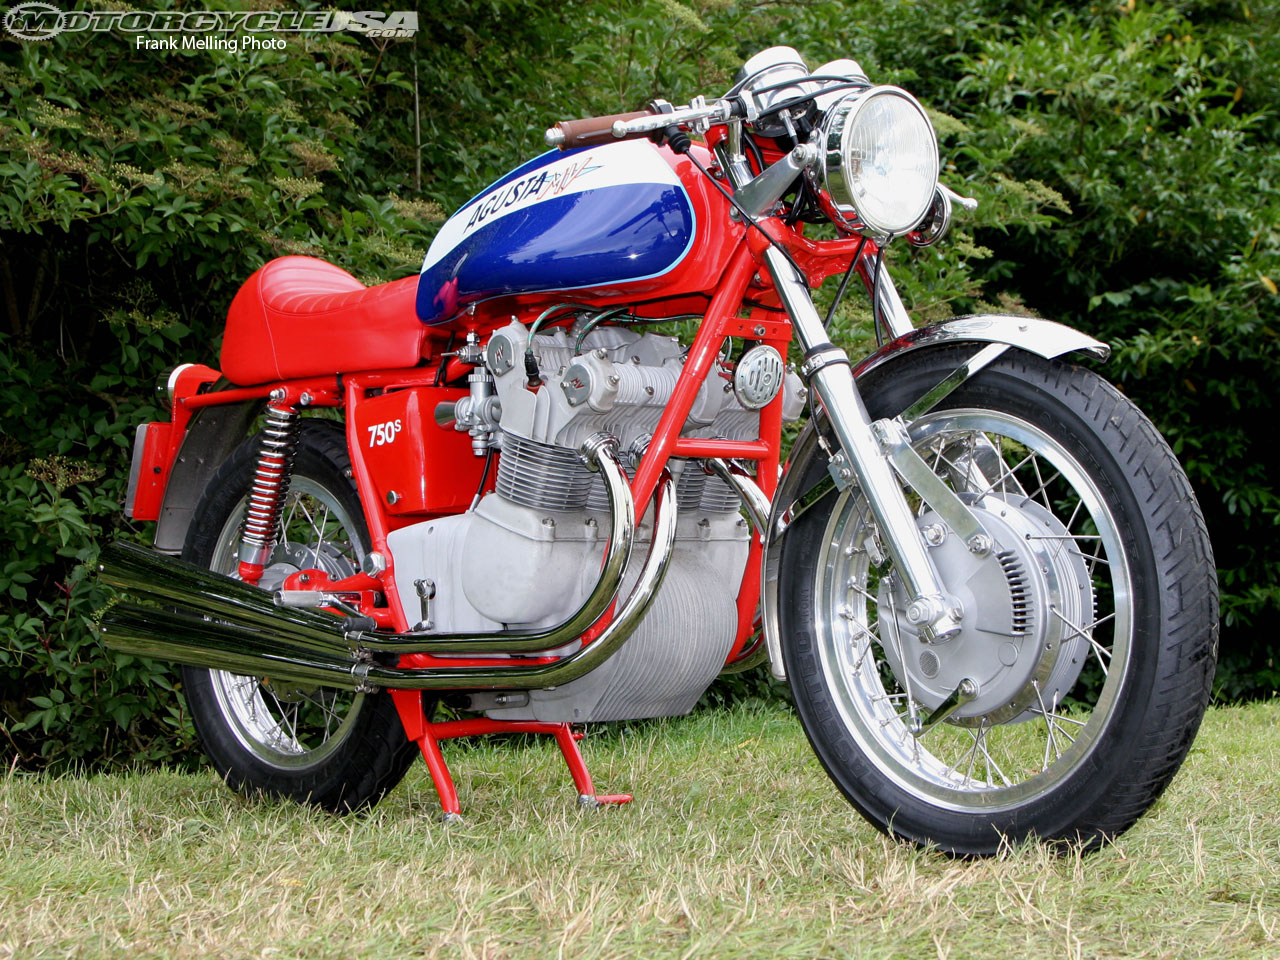 MV Agusta 750 GT 1974 images #113829